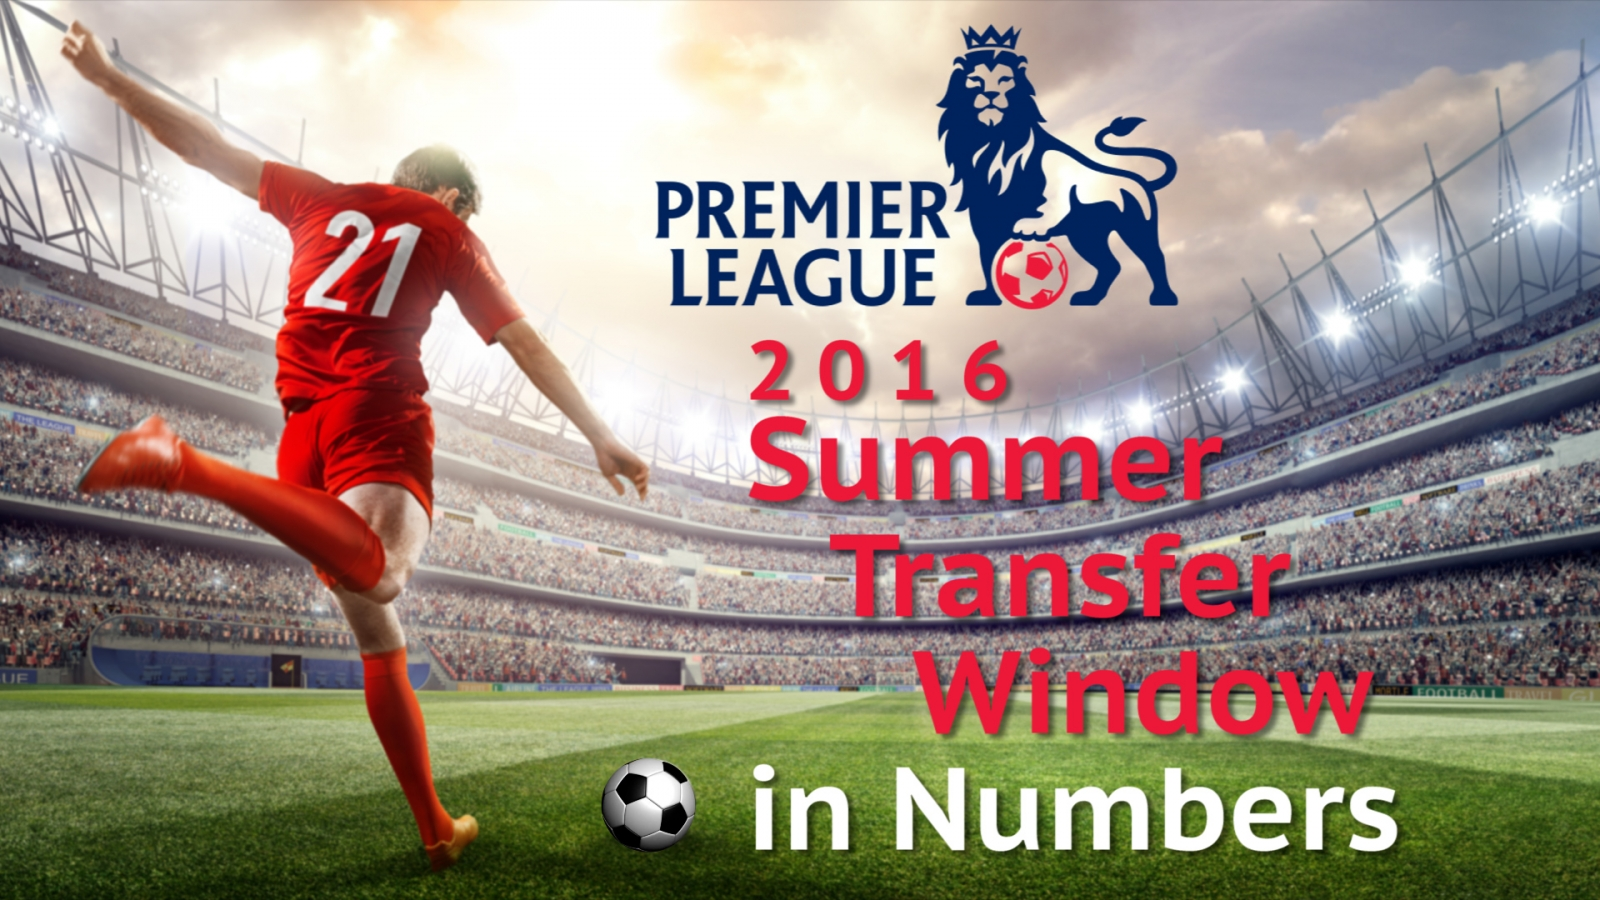 Premier League 2016 summer transfer window in numbers